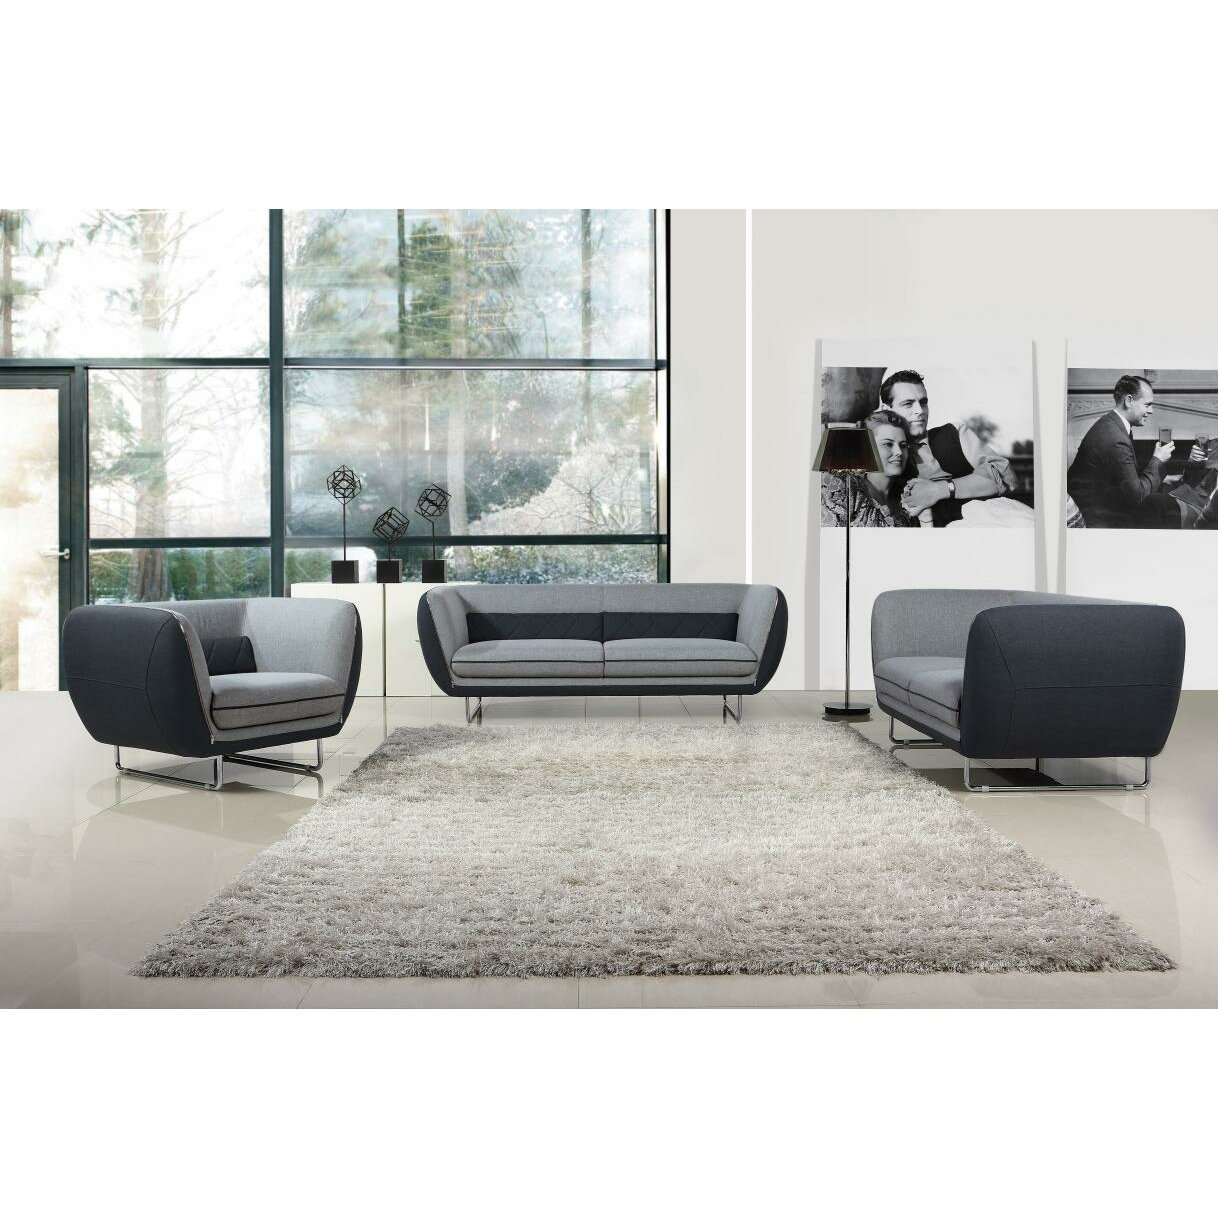 Vig furniture divani casa vietta modern living room set for Modern living room sets